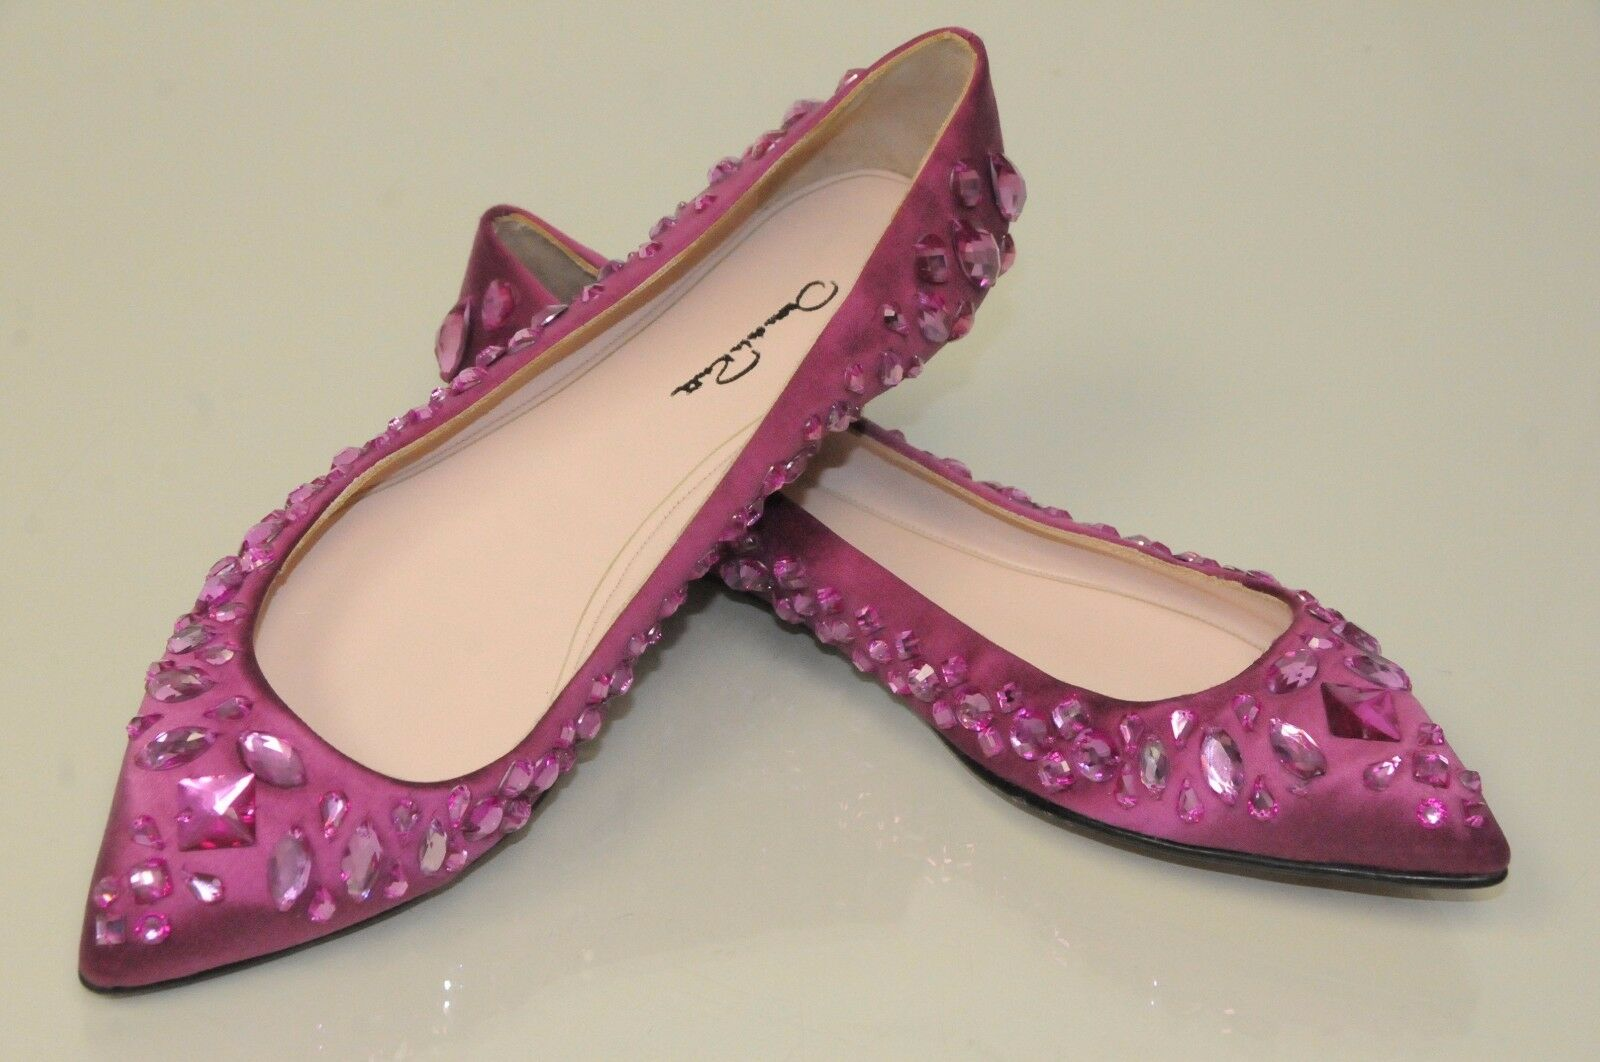 $1050 NEW OSCAR De La RENTA Habi crystal embellished pink satin flats Shoes 39